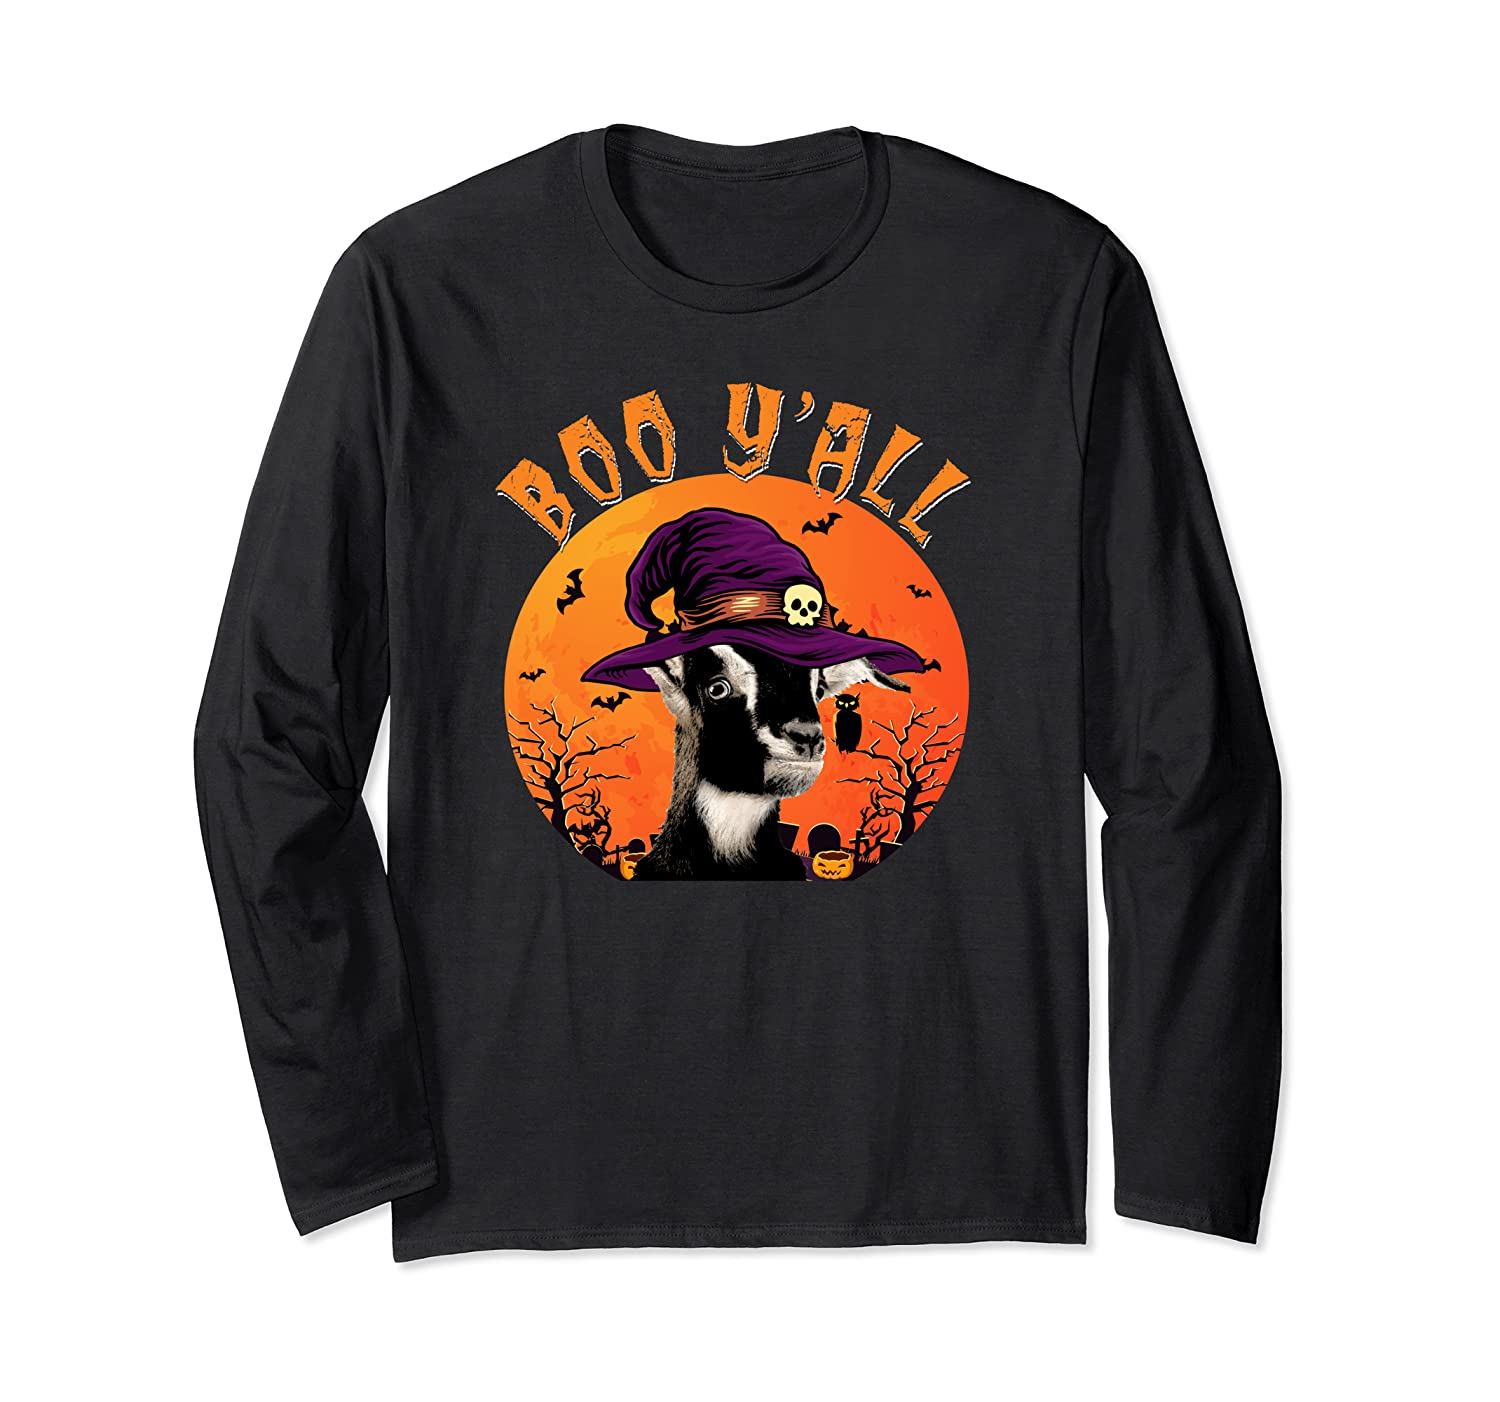 Boo Y'all Funny Southern Witch Hat Halloween Goat Long Sleeve T-Shirt